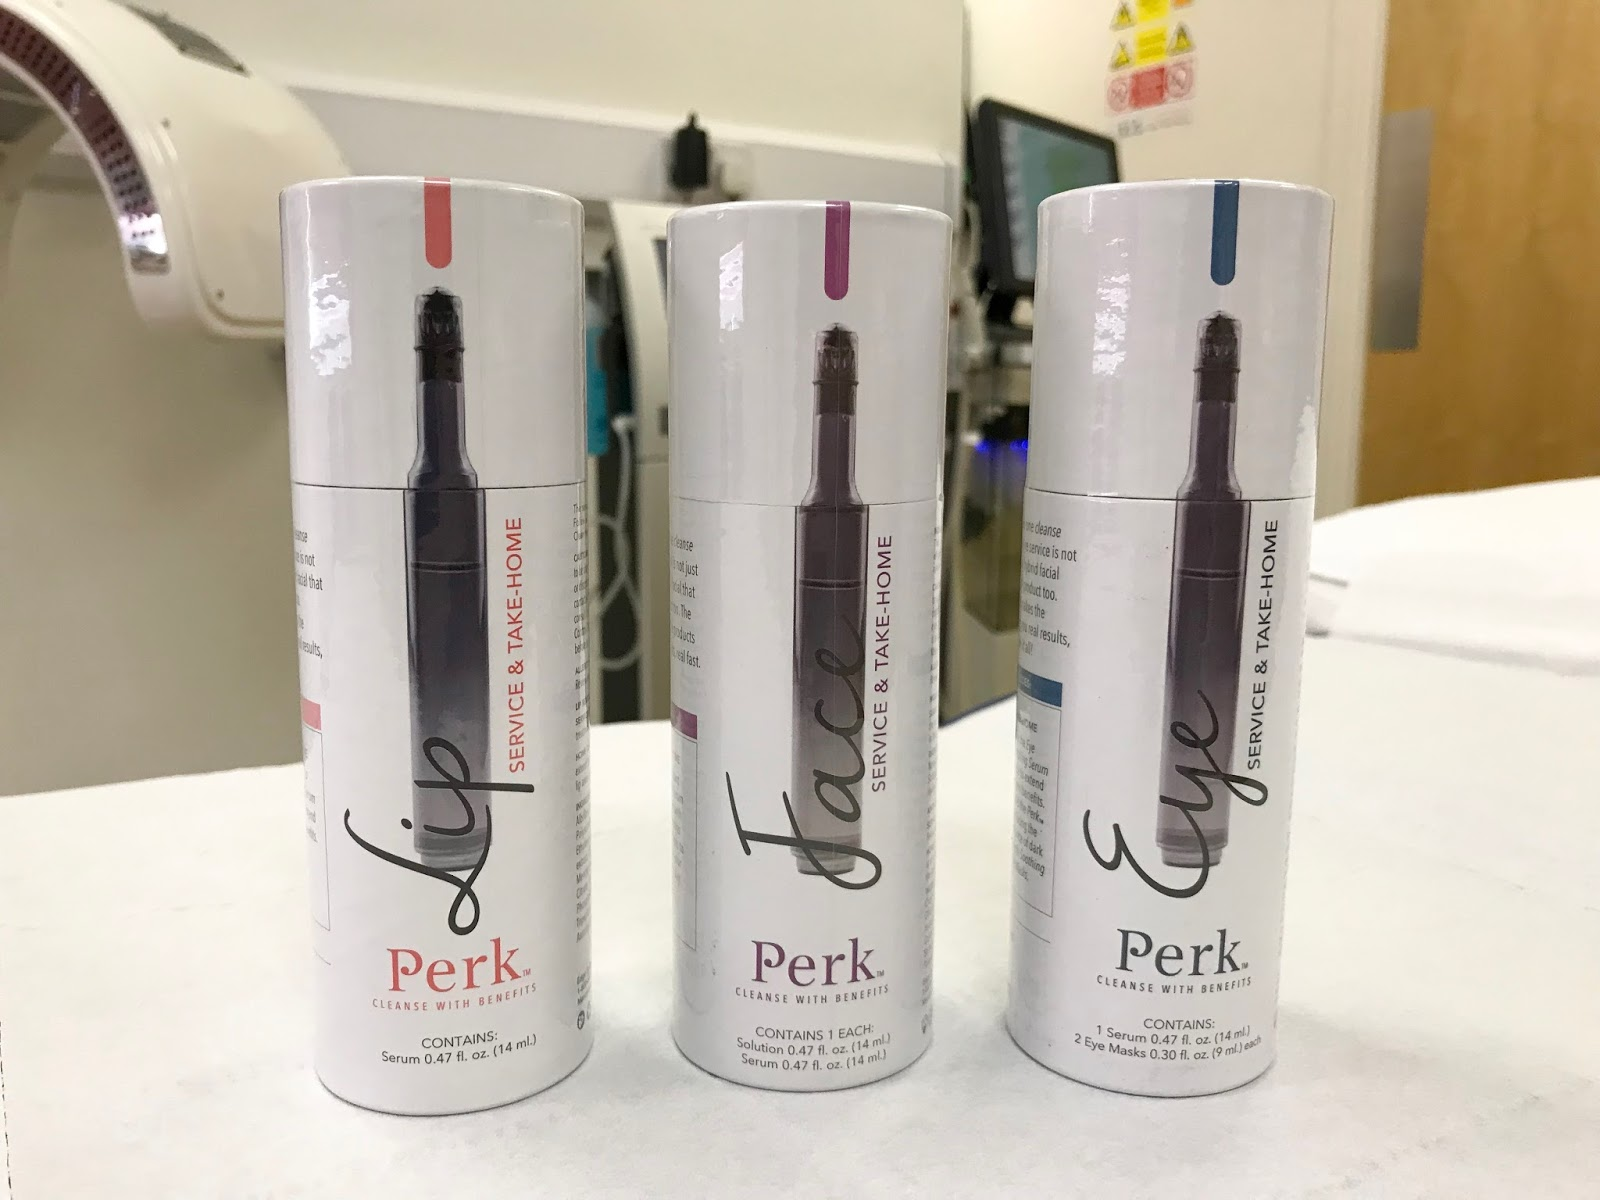 Perk facial take home products \ Medizen \ Priceless Life of Mine \ over 40 lifestyle blog